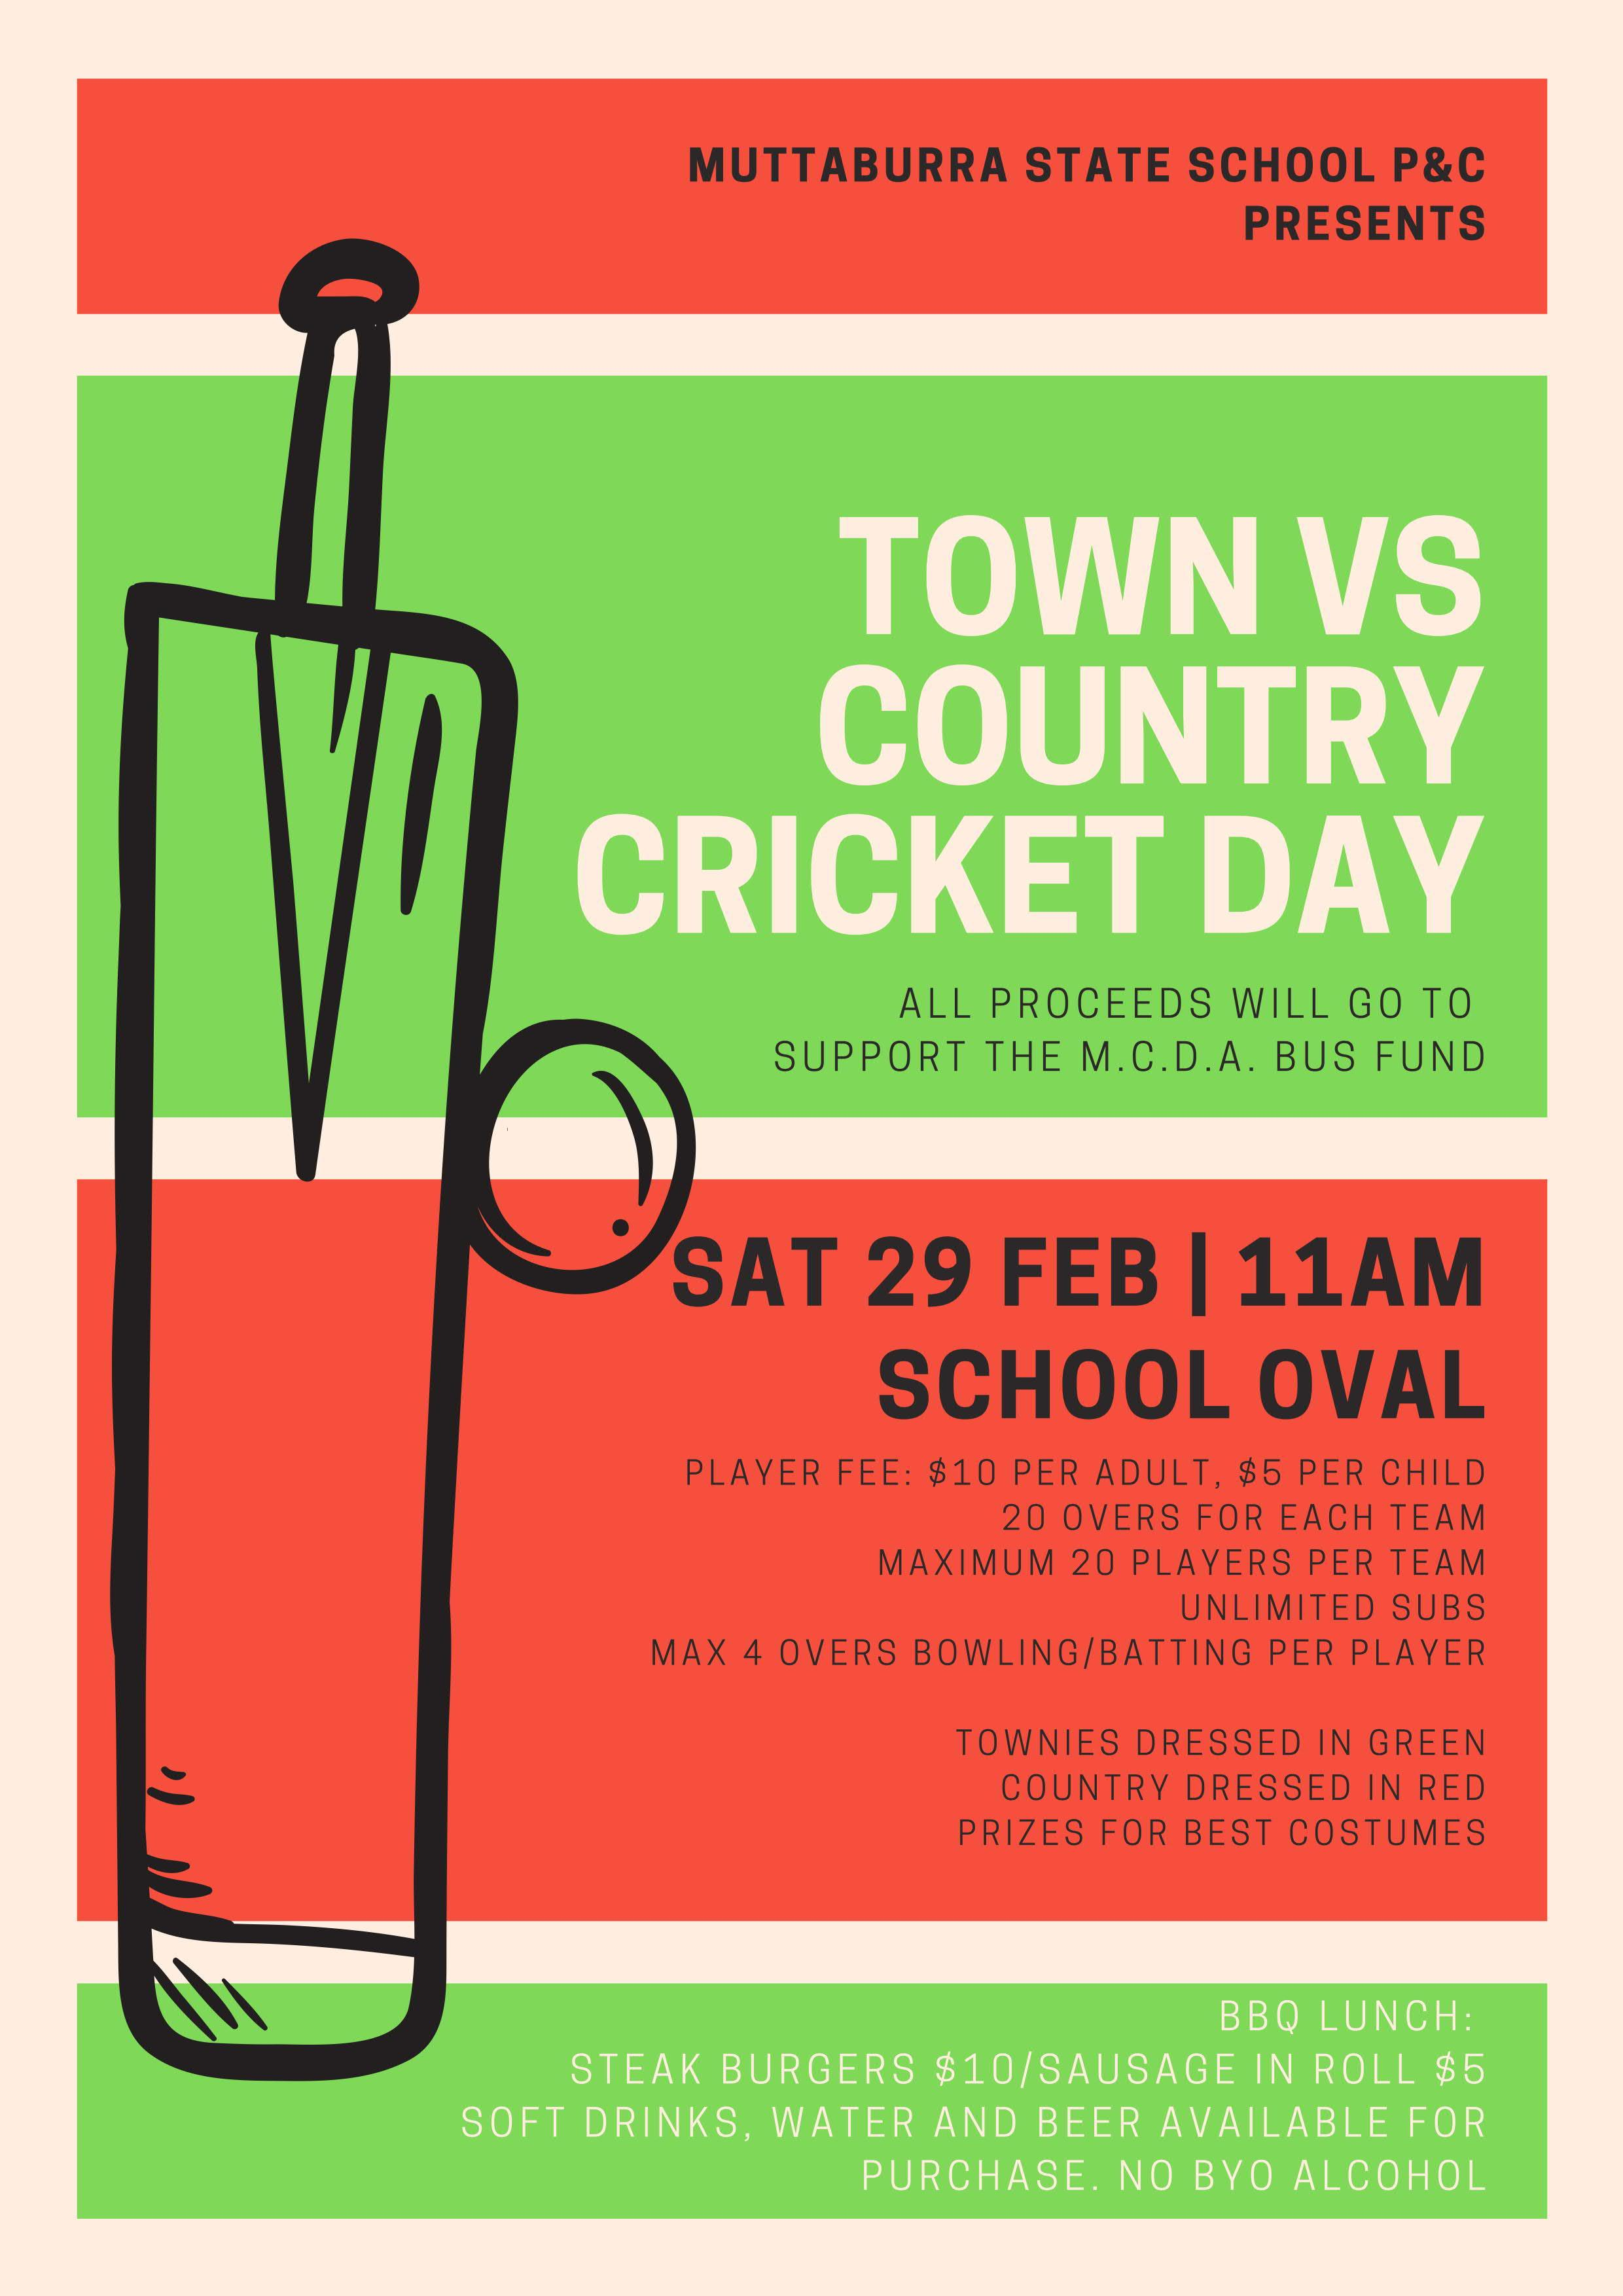 Muttaburra State School P&C - Town vs Country Cricket Day